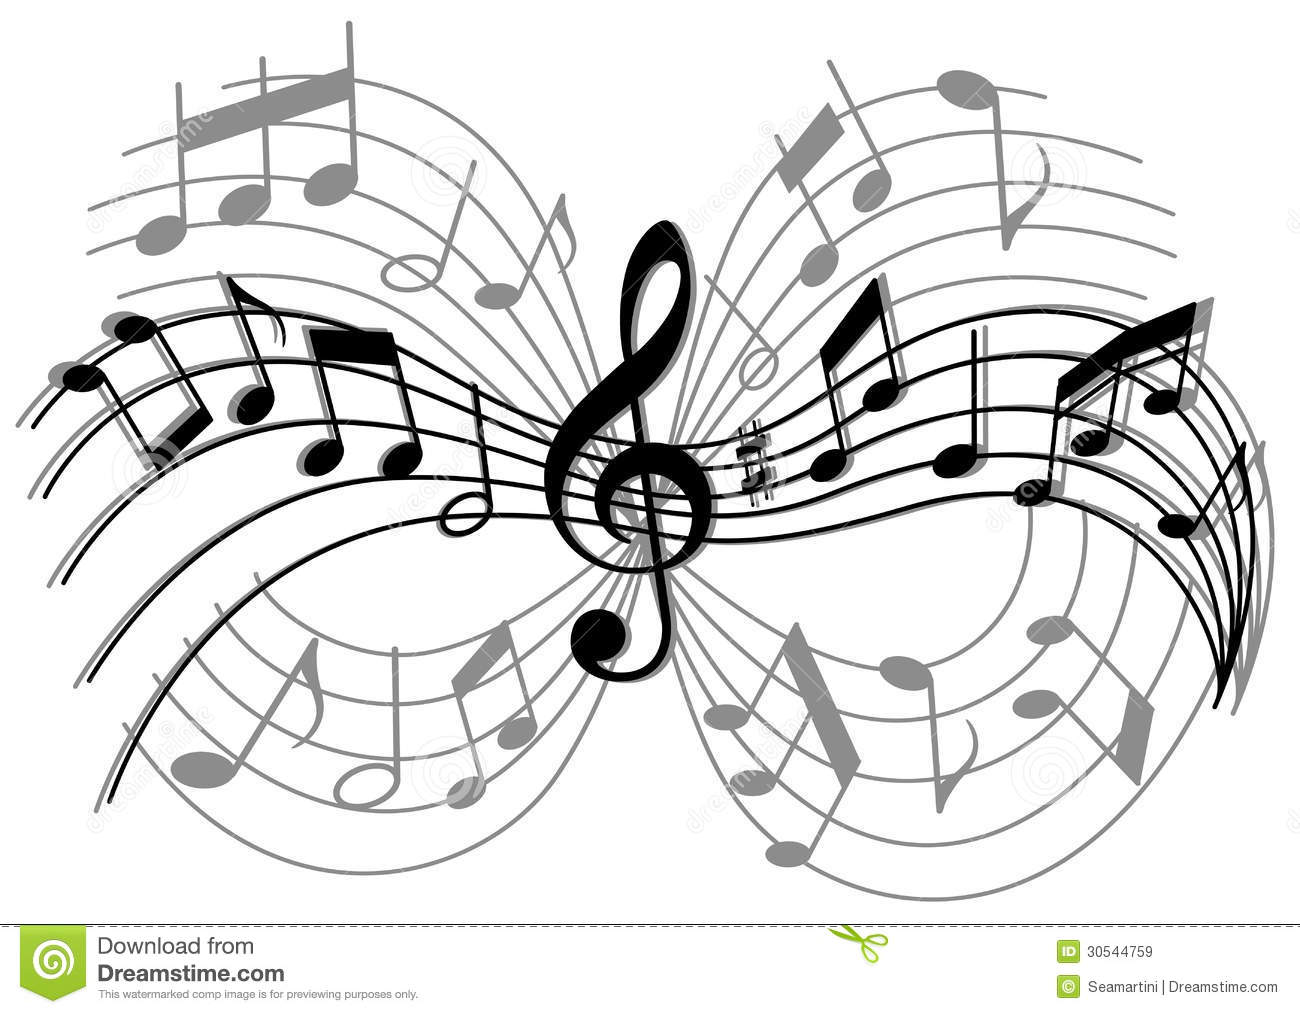 Abstract Music Notes Art: Abstract Musical Composition Royalty Free Stock Images